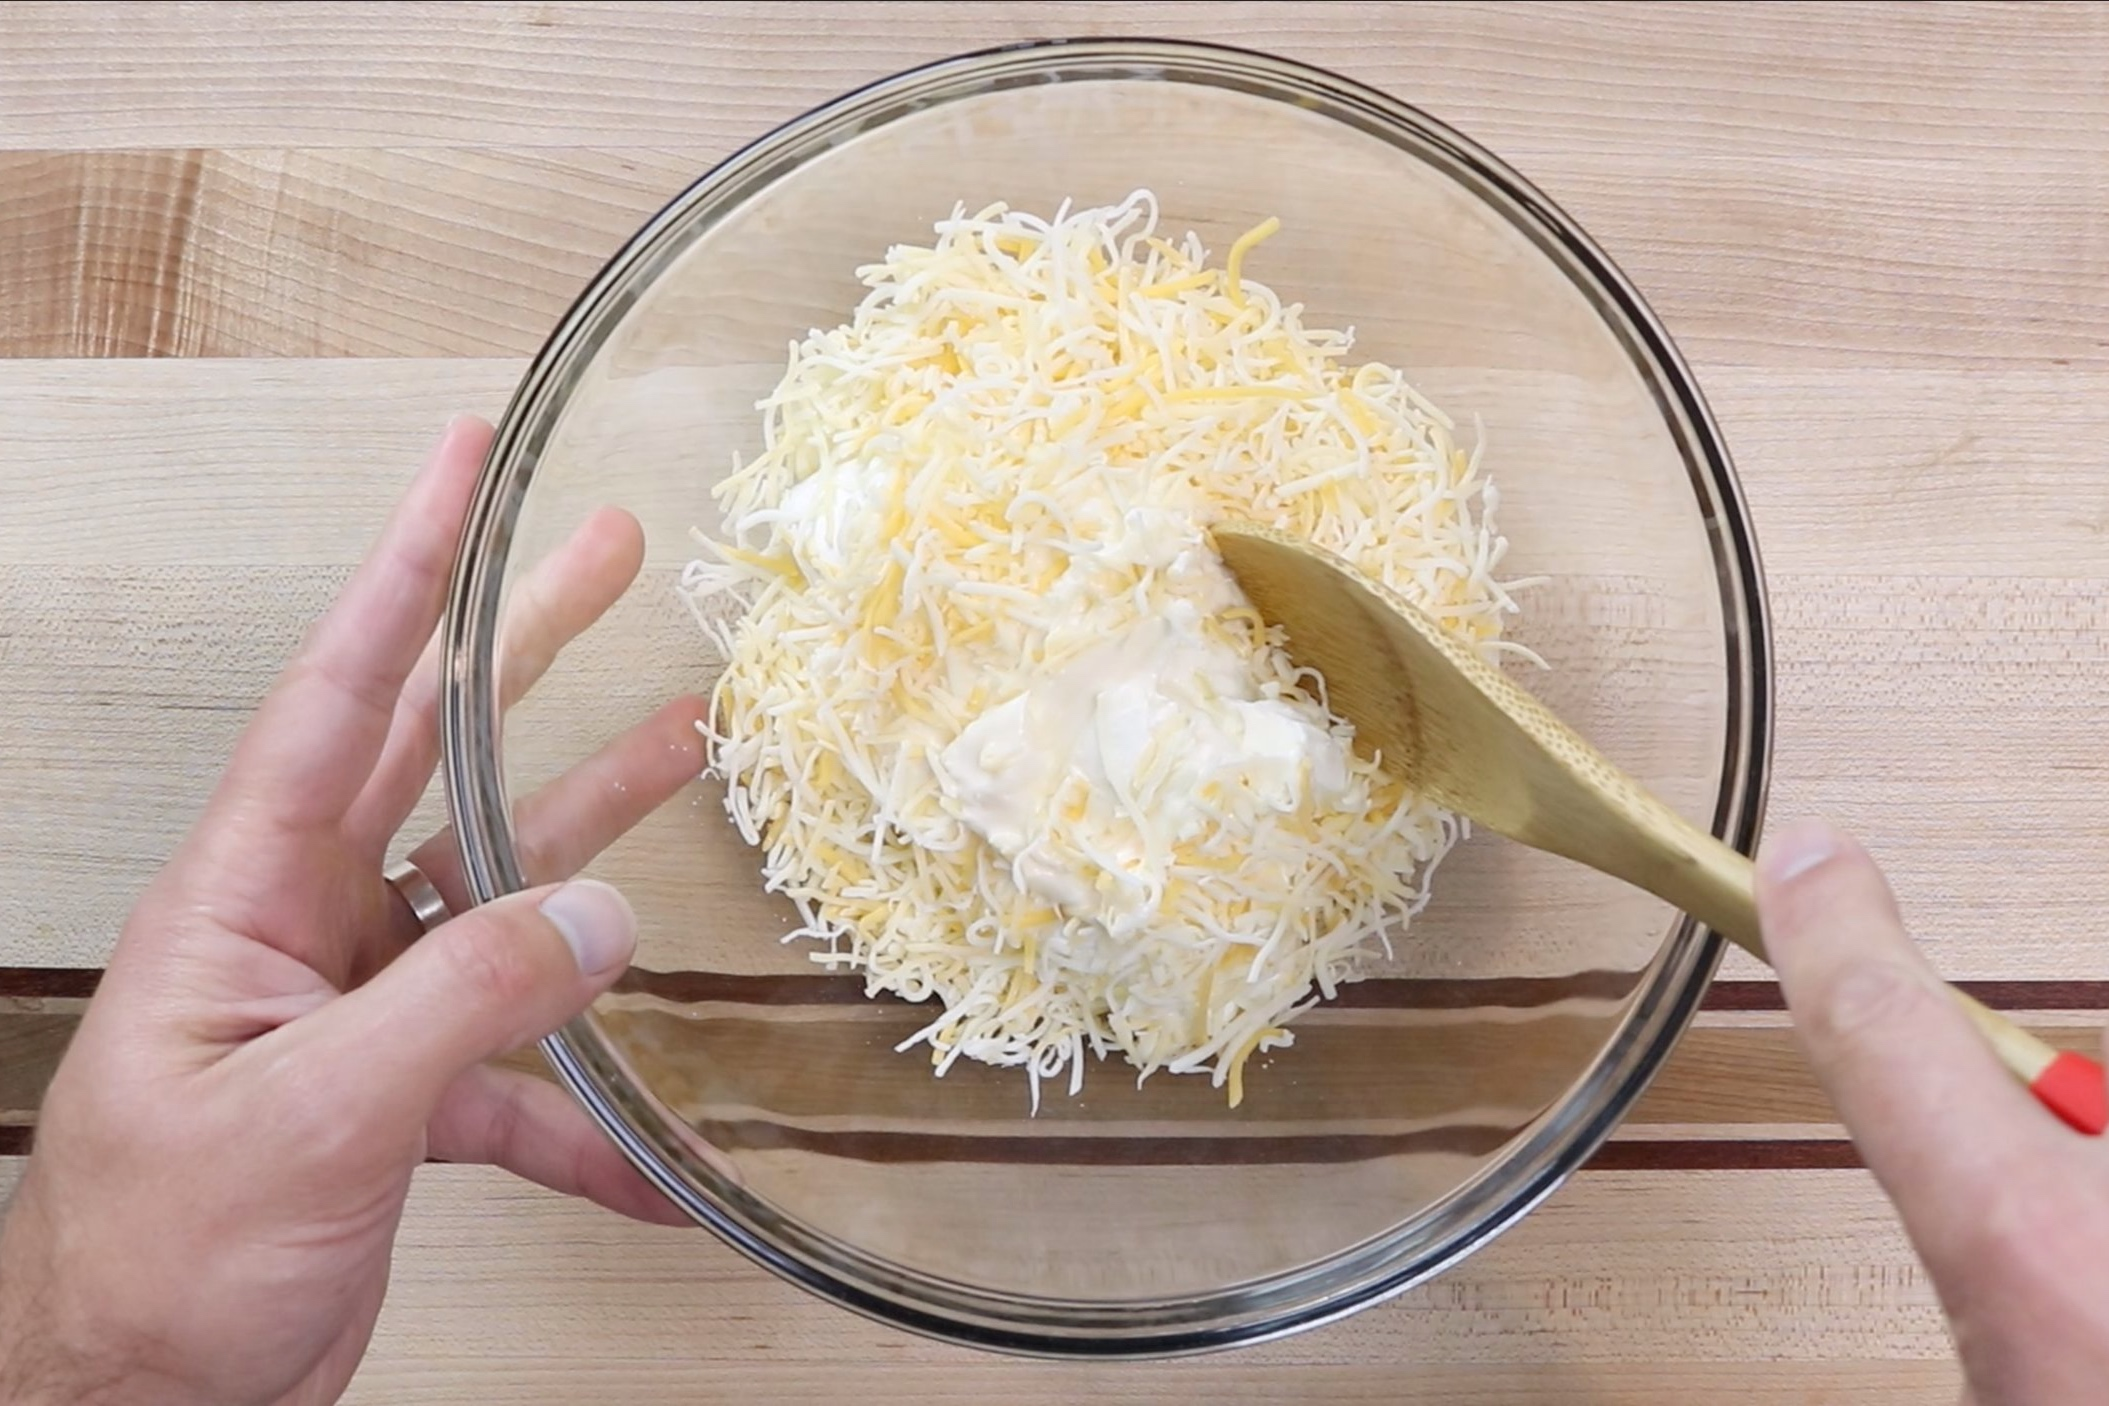 2. Add the sour cream and shredded cheese and mix until combined. -